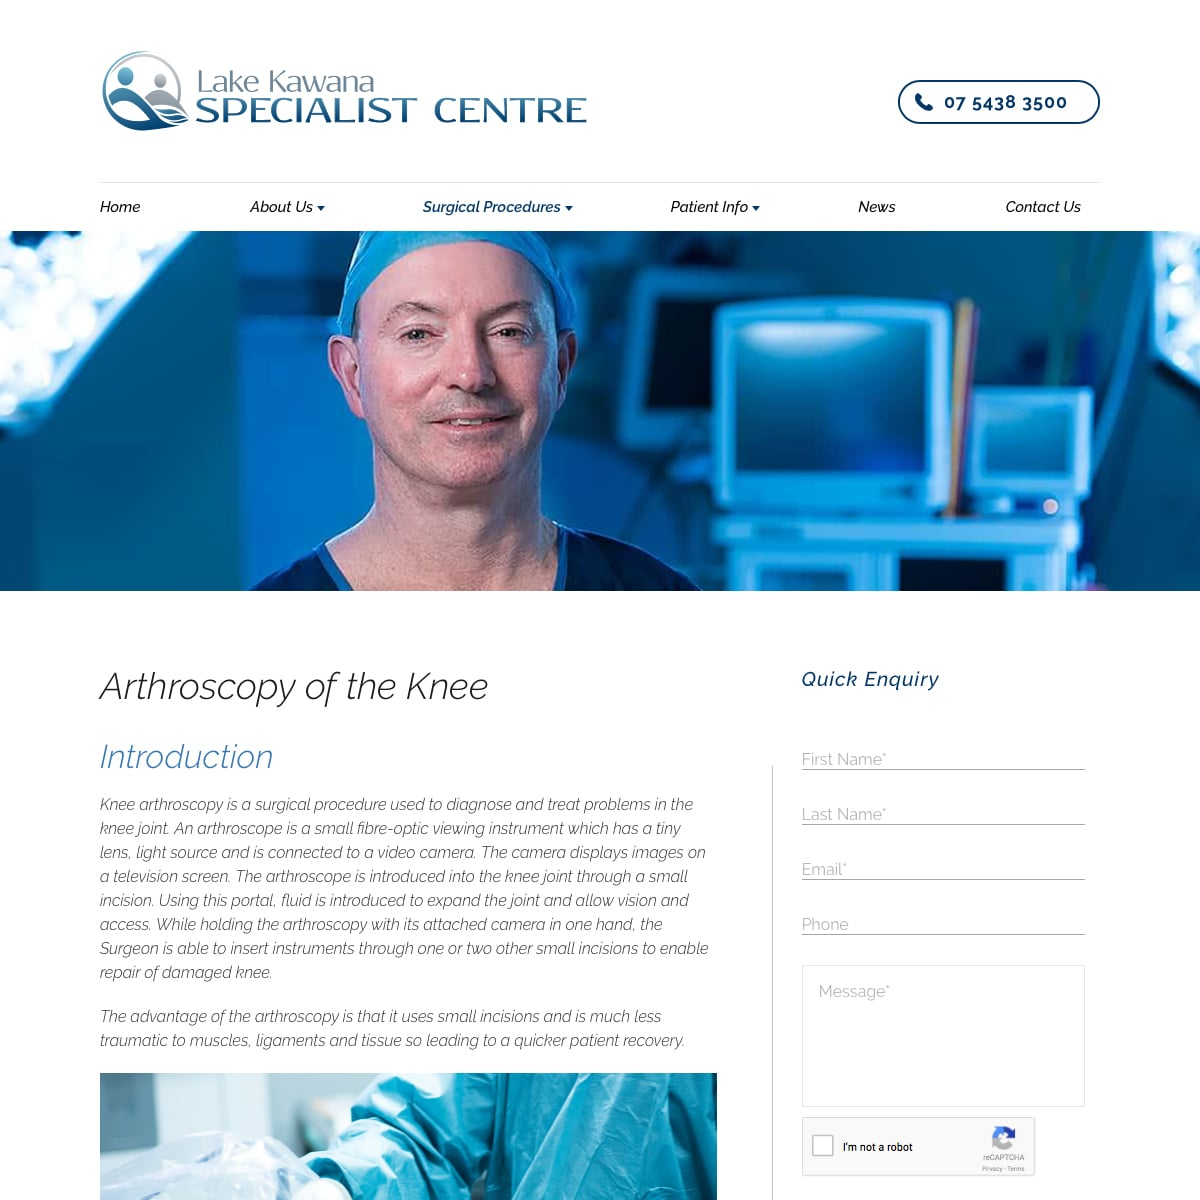 Lake Kawana Specialist Centre - Arthroscopy of the Knee